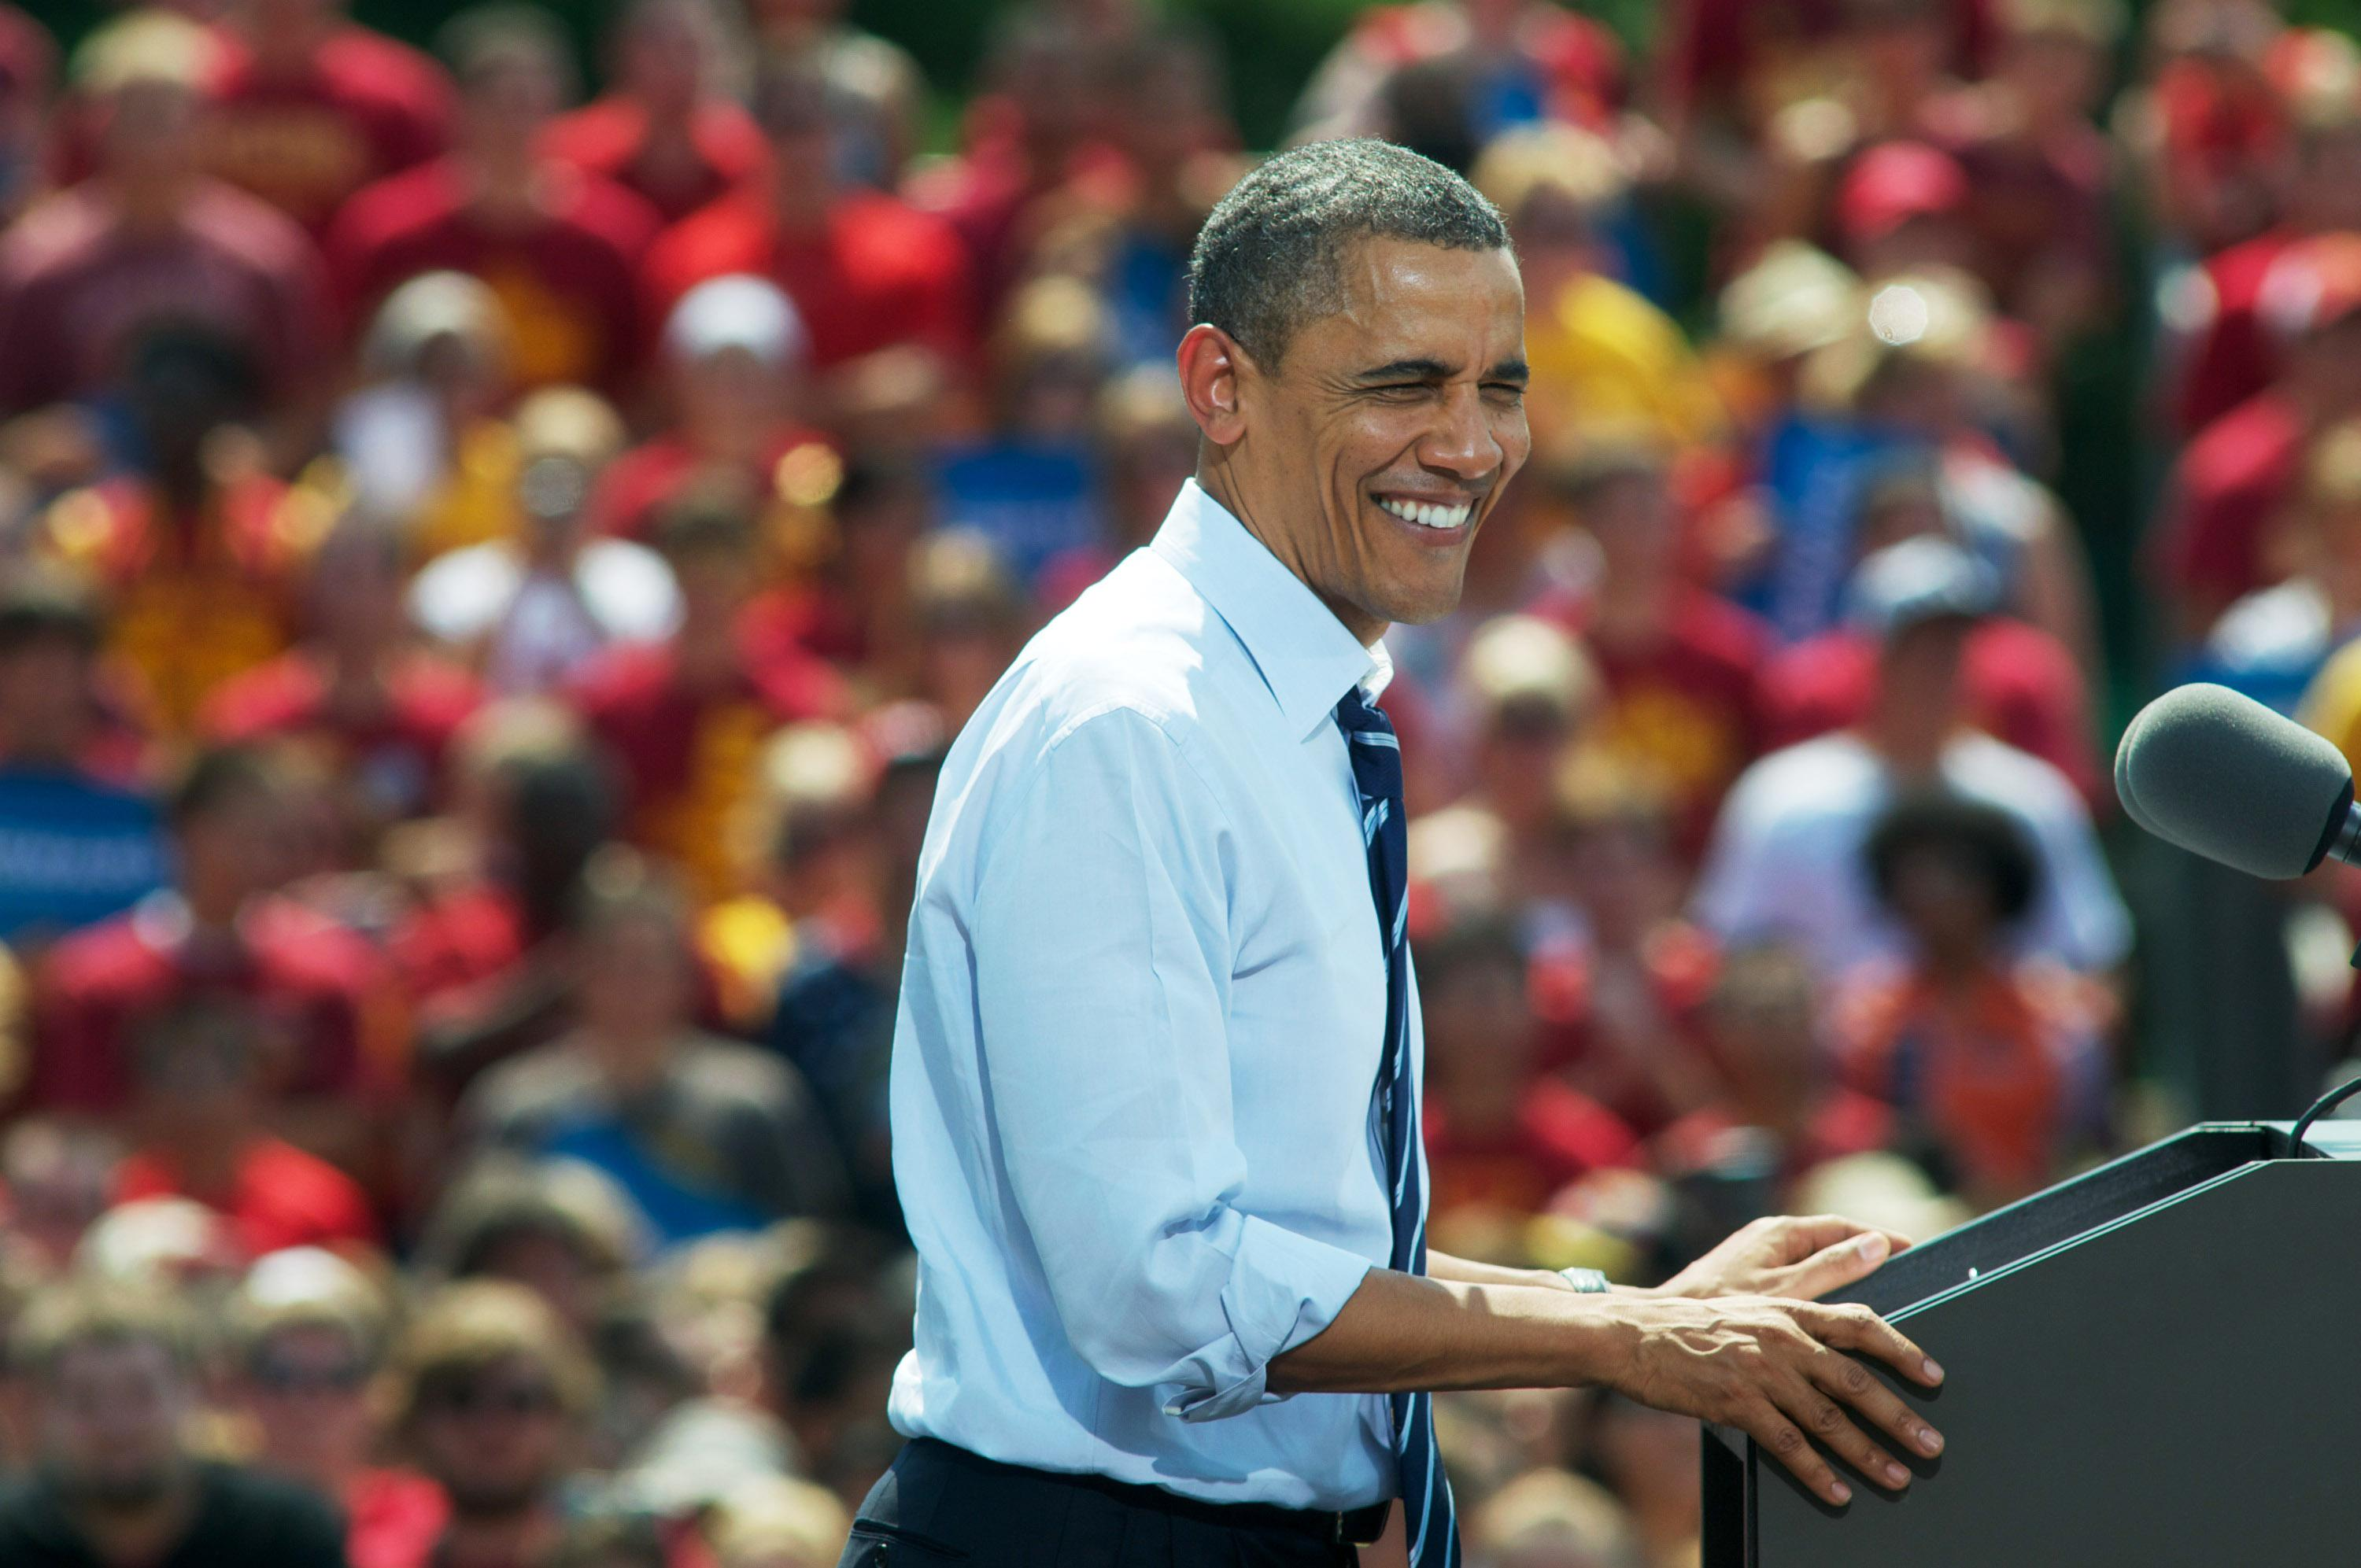 Obama Rallies Young Voters At Iowa State University